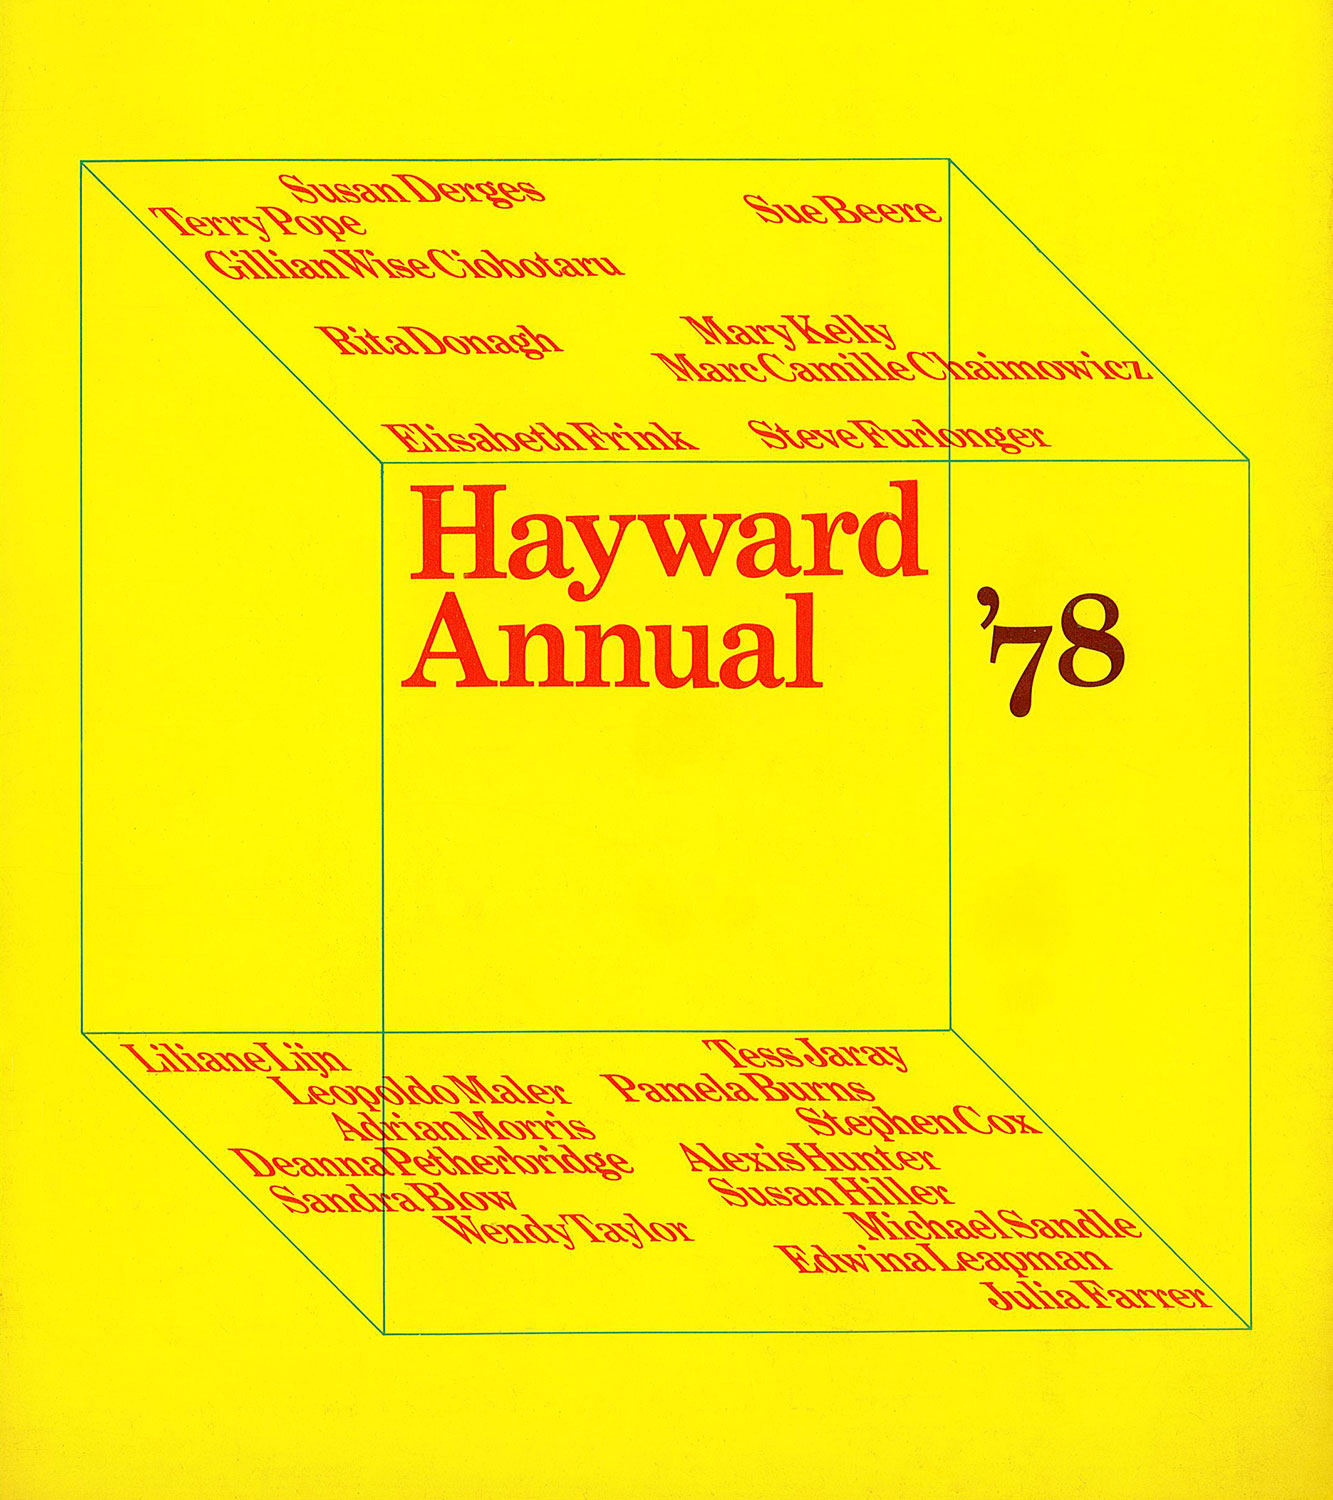 Cover of the Hayward Annual catalogue, 1978